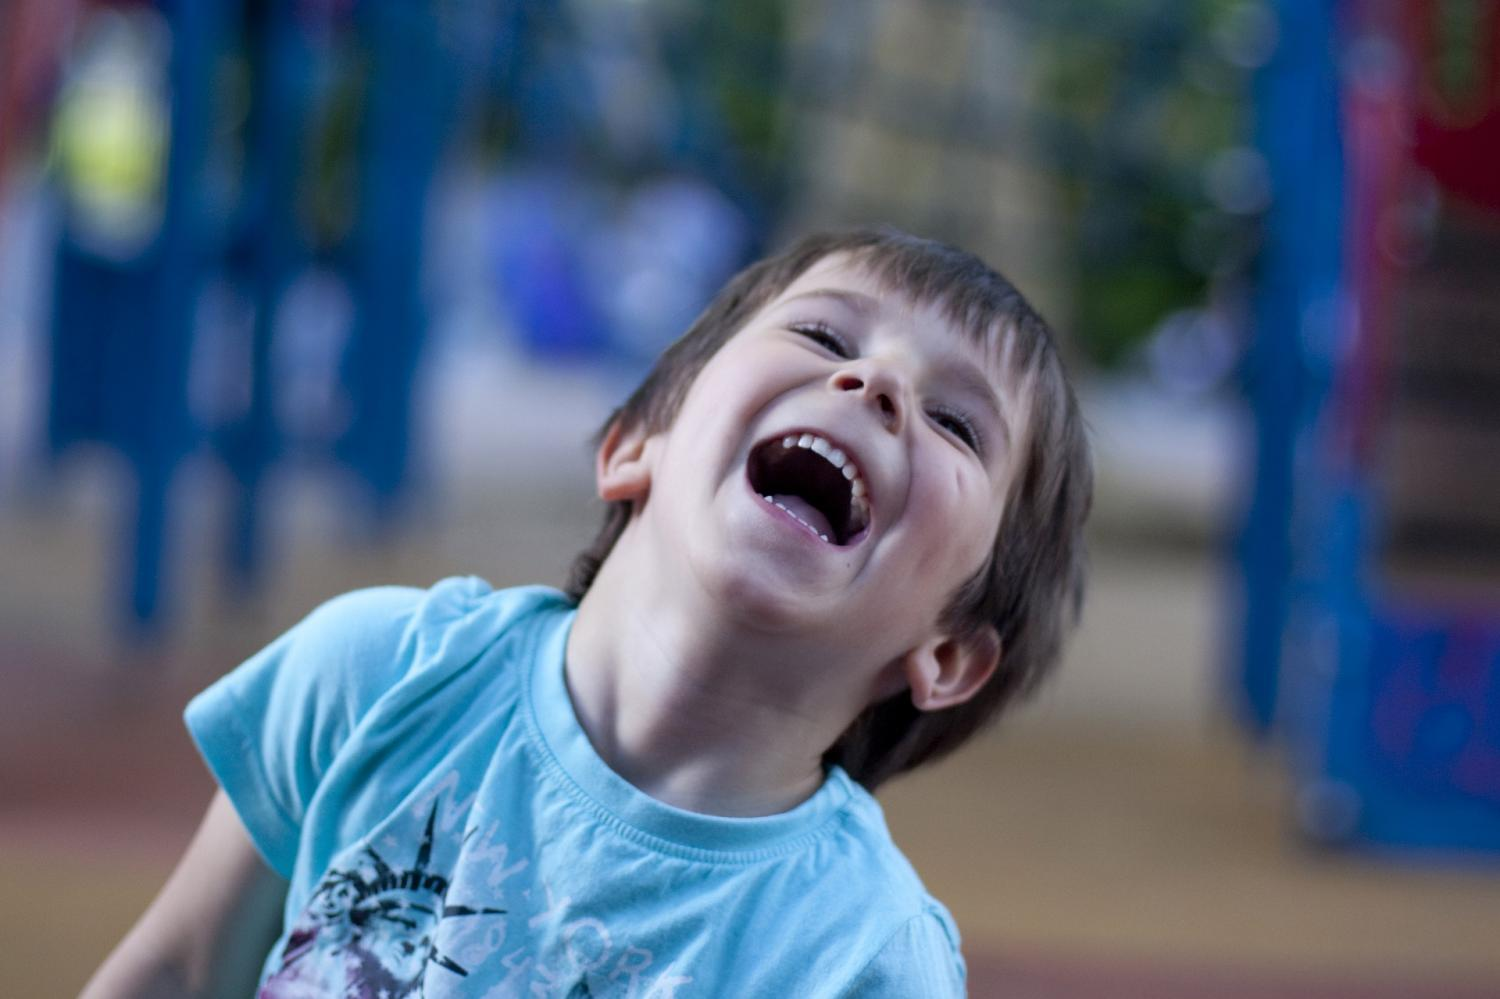 Laughing is good for your mind and your body – here's what the research shows